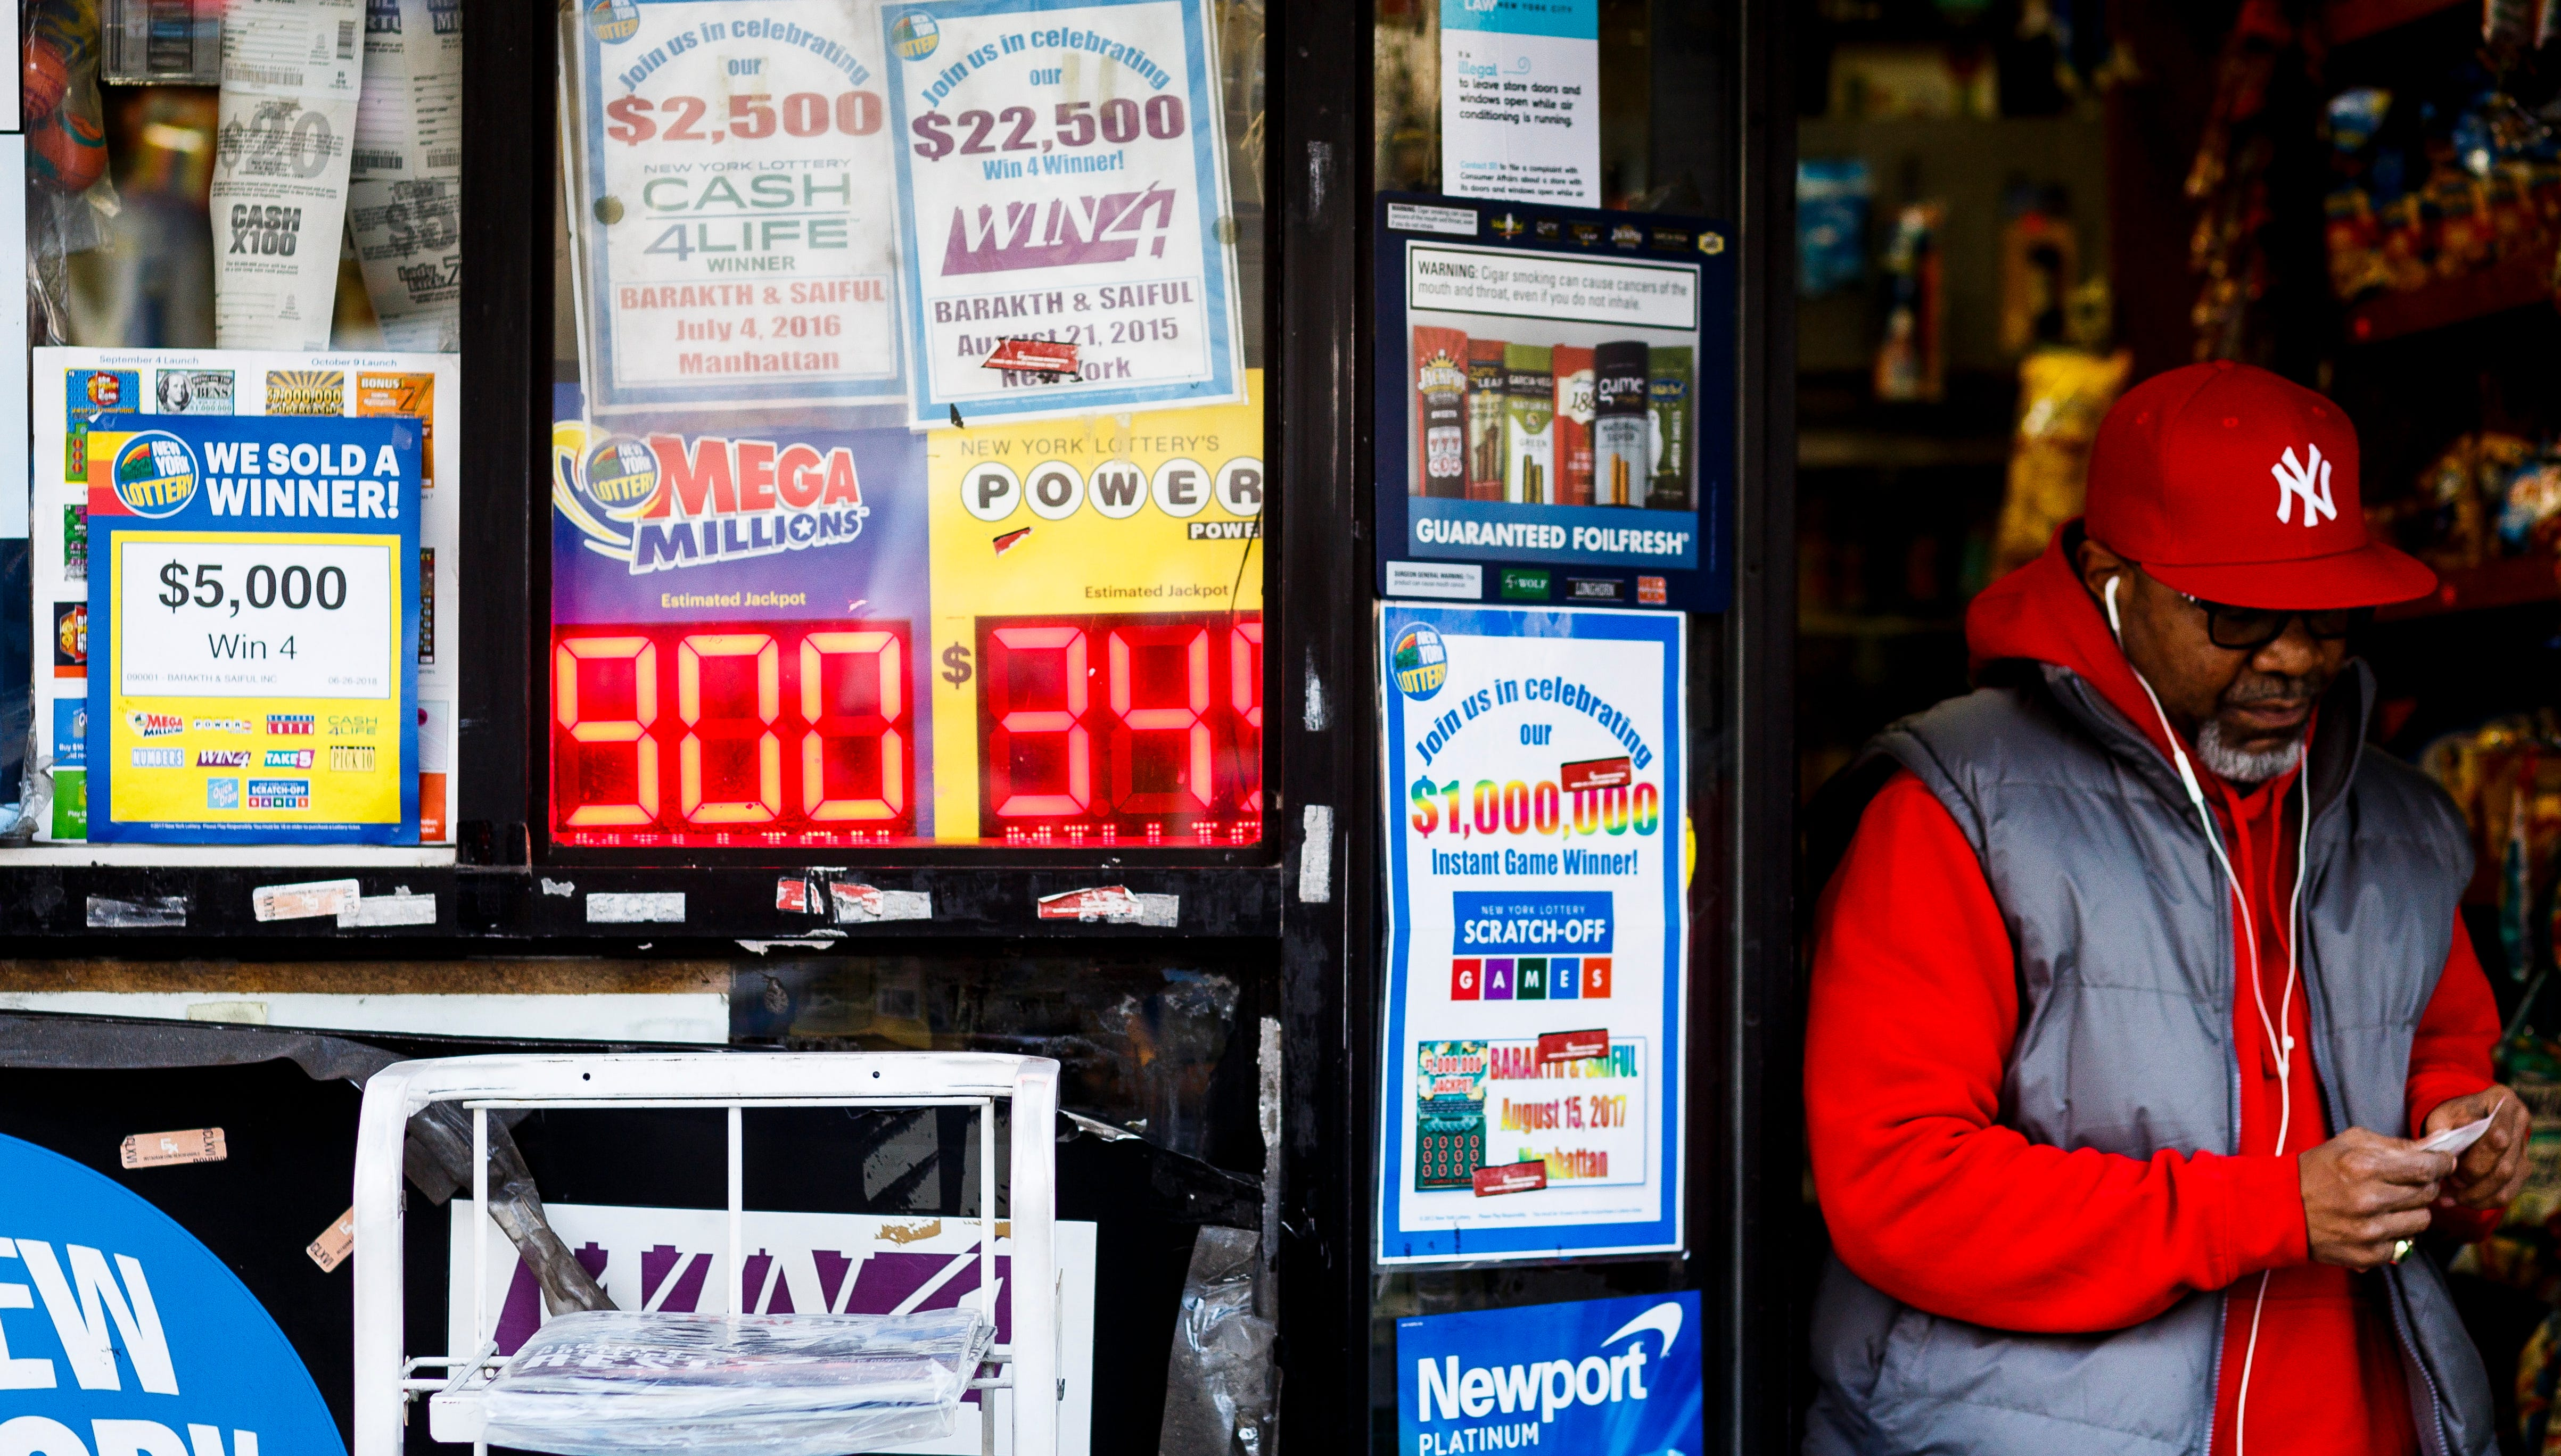 A view of a sign showing the jackpot for the Mega Millions lottery at $900 million in New York, New York, on October 17, 2018.